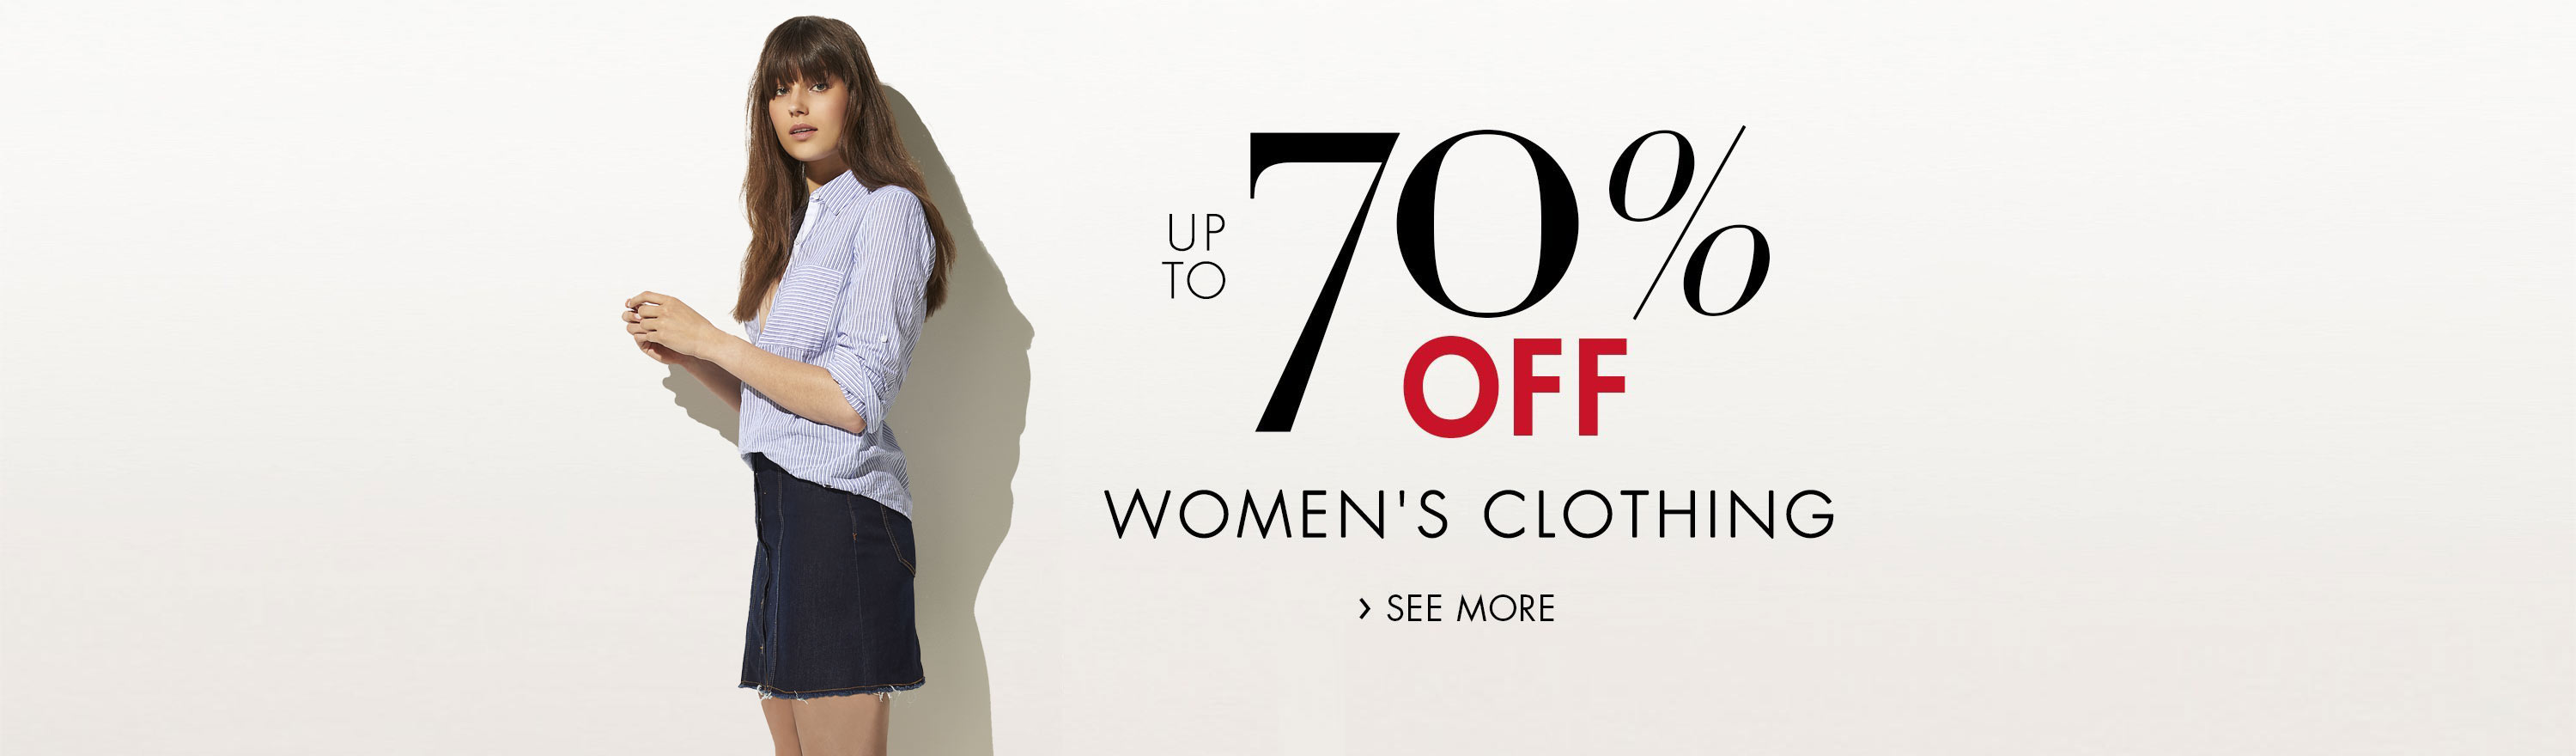 Up to 70% Off Women's Clothing